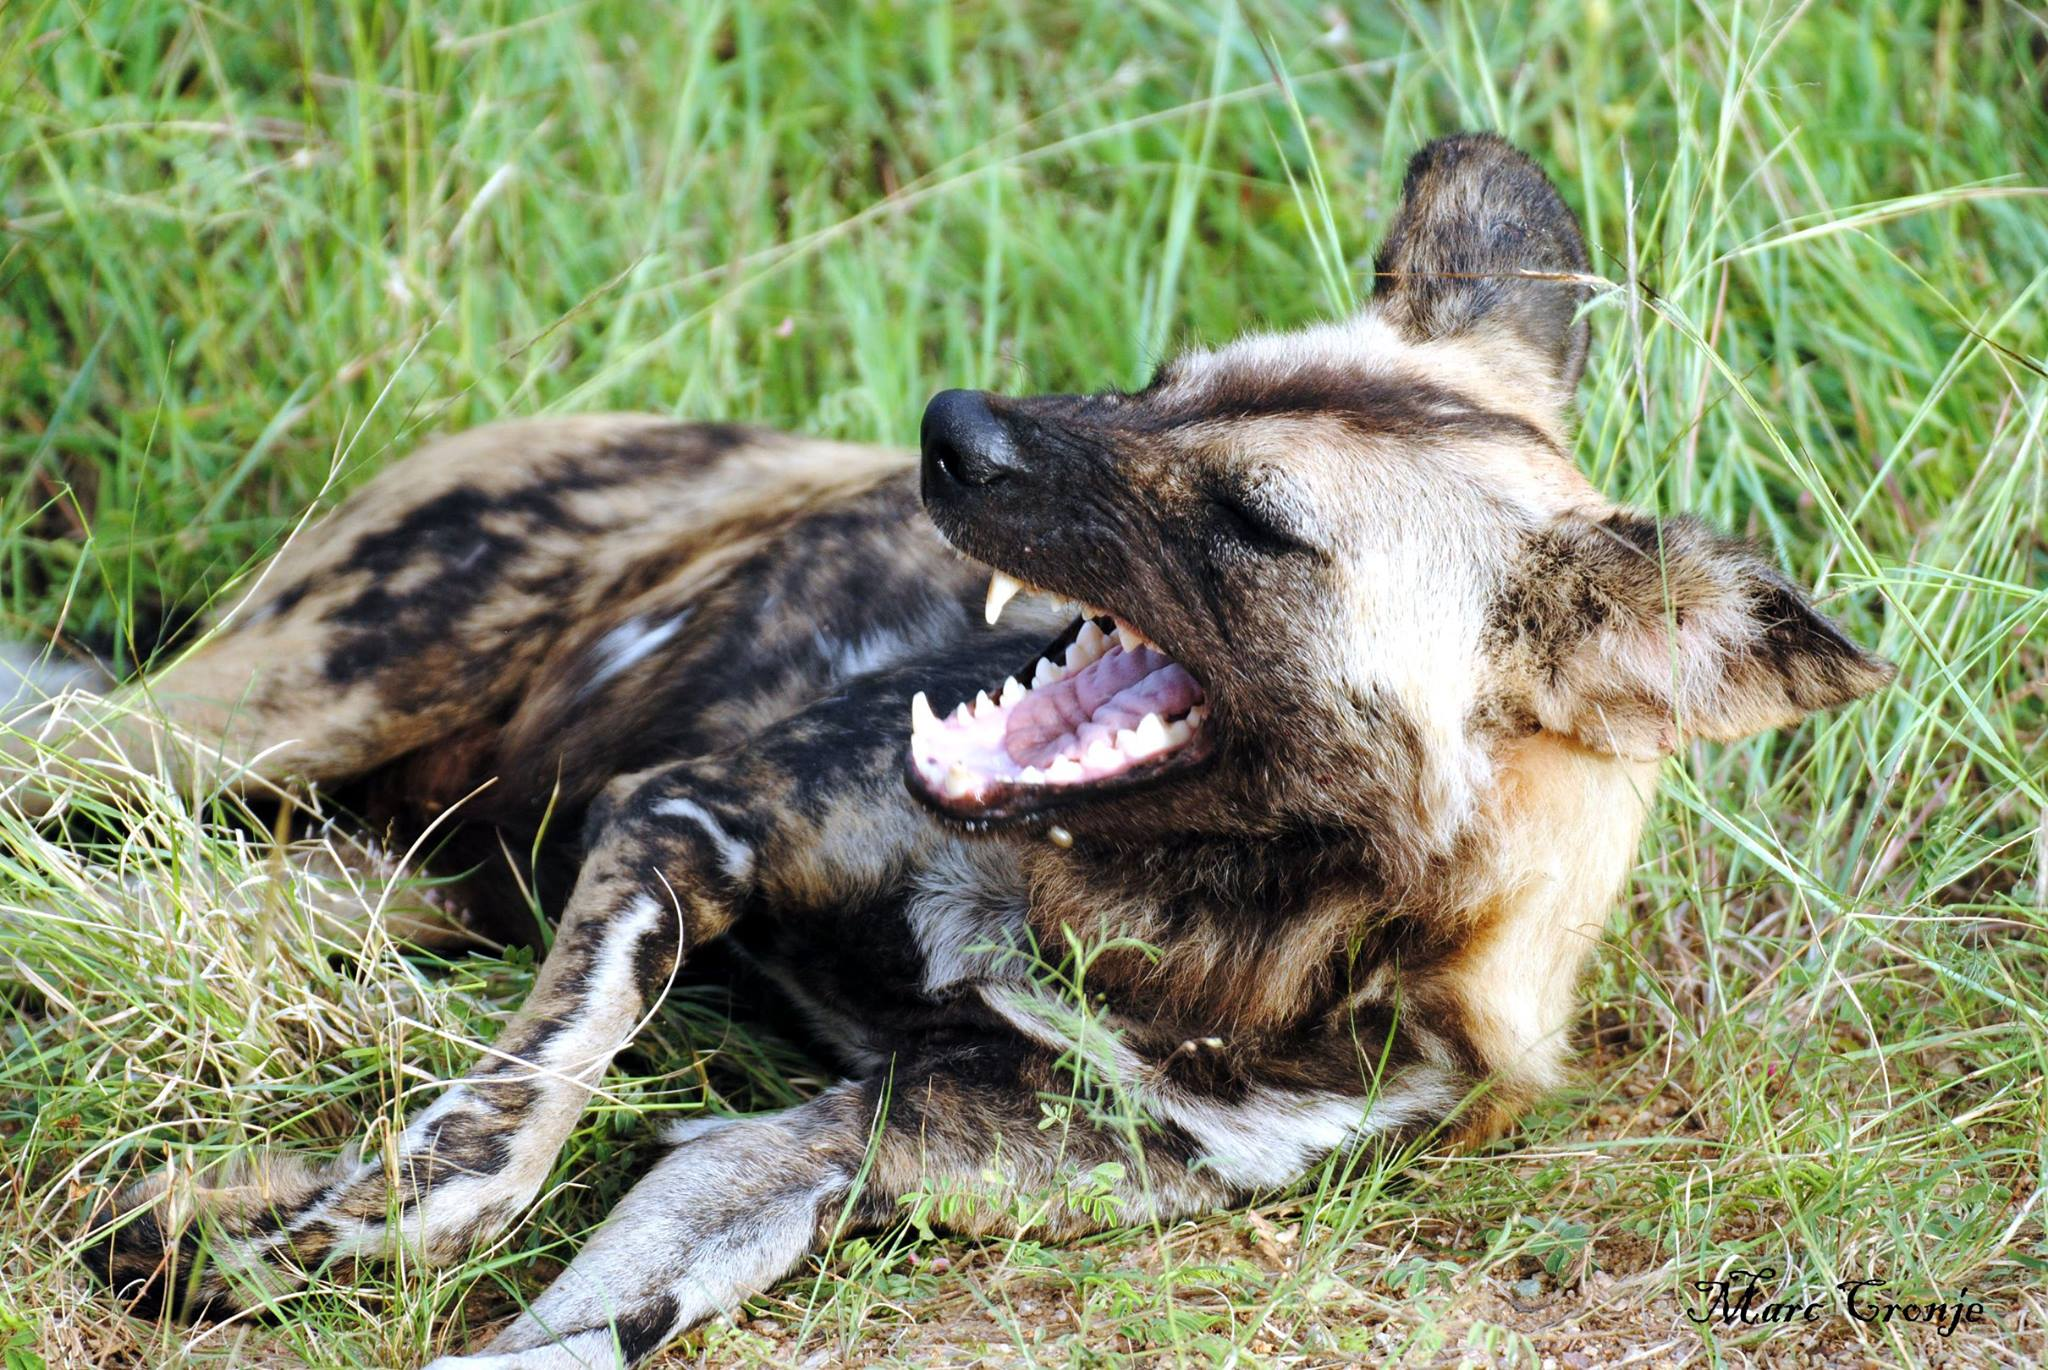 """He may look ferocious but he is only playing with pack mates. Painted dog's jaws are comparatively weak - unable to make the """"kill"""" bite of most predators. Image: Thanks to ©Marc Cronje, Independent Field Guide. Destination: Kruger National Park, South Africa."""